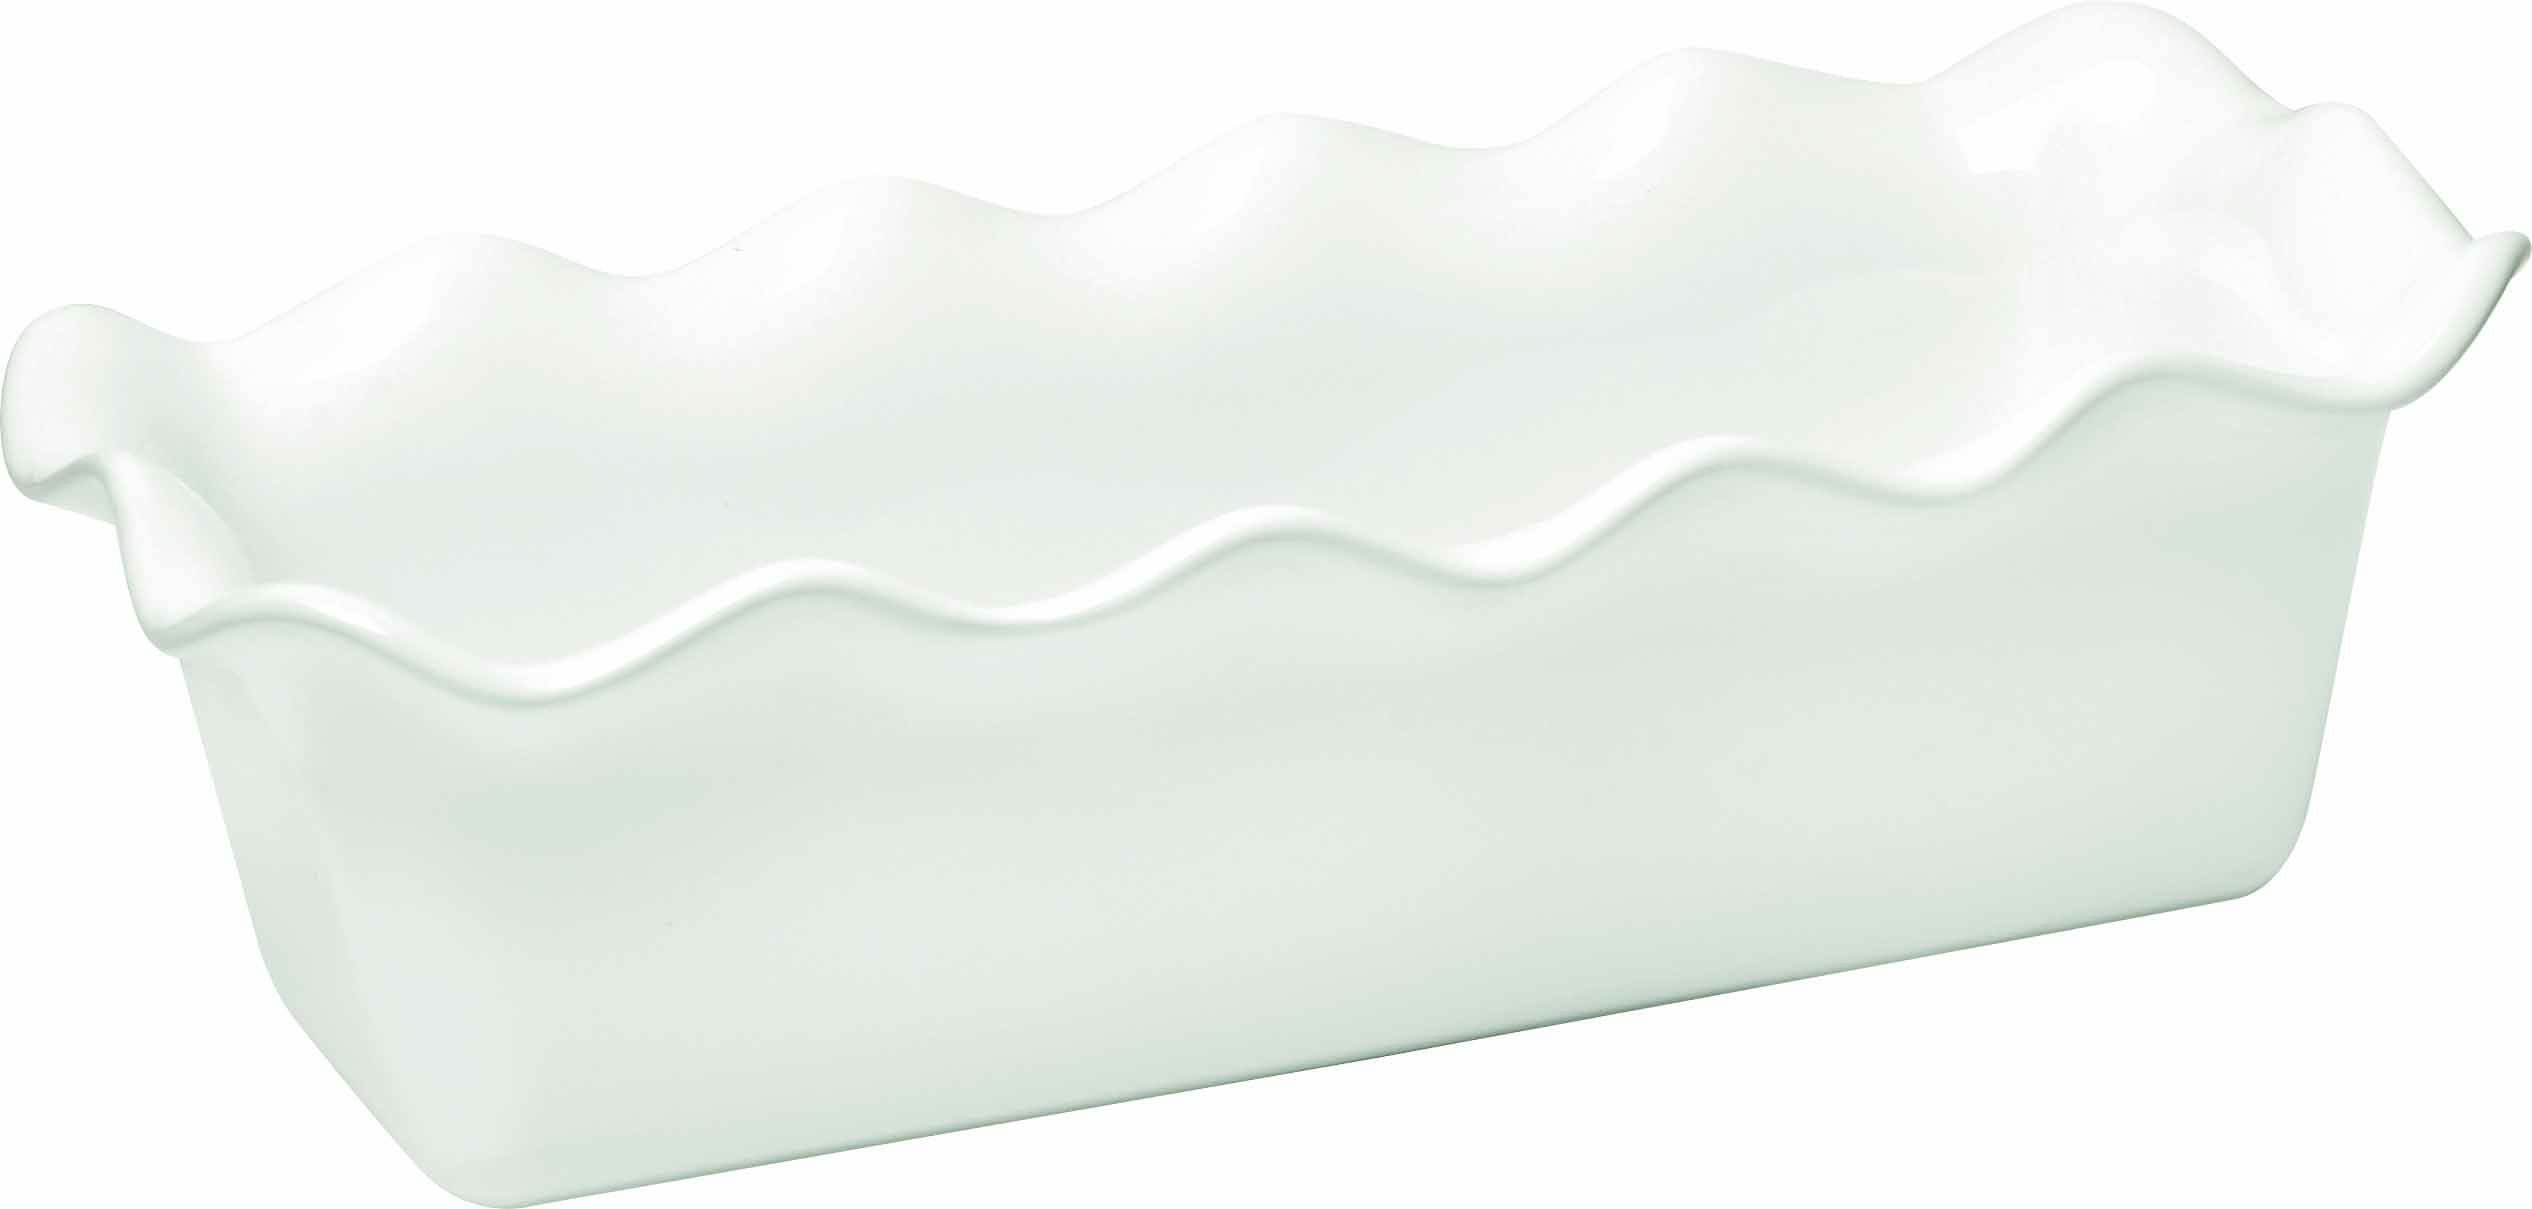 Emile Henry Made In France Ruffled Loaf Pan, 12.5'' by 6'' by 4'', Flour White